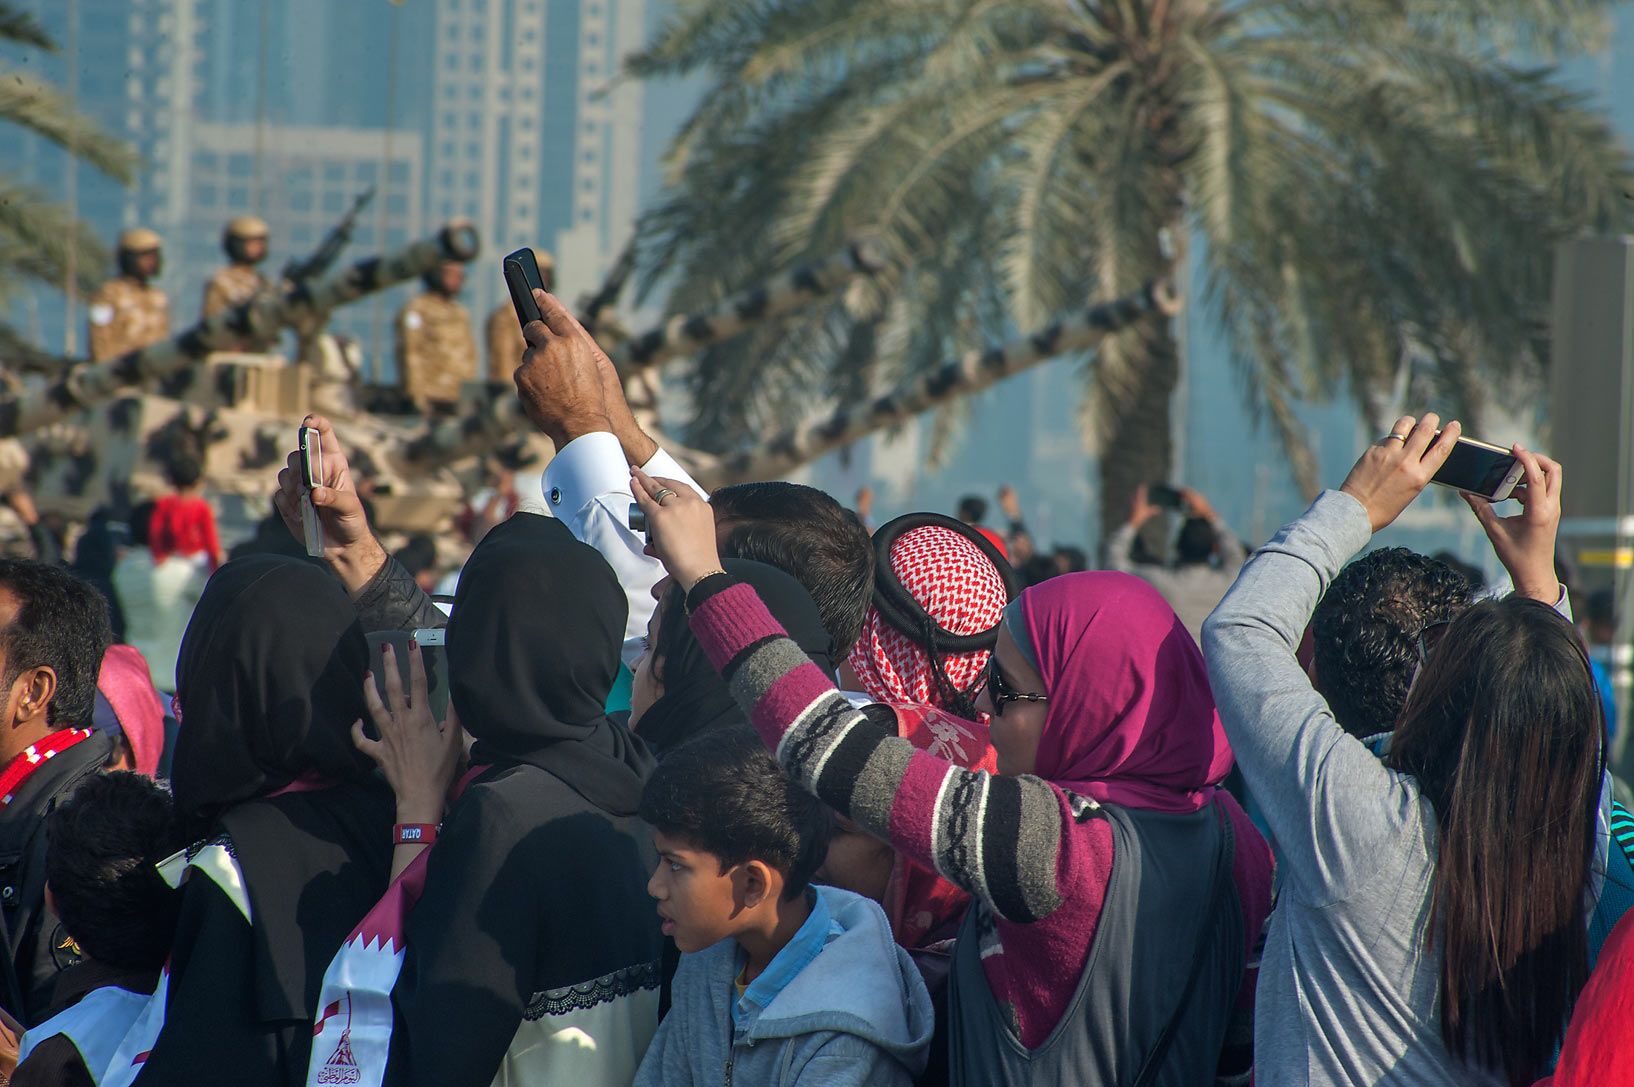 Spectators watching tanks at National Day parade on Corniche. Doha, Qatar